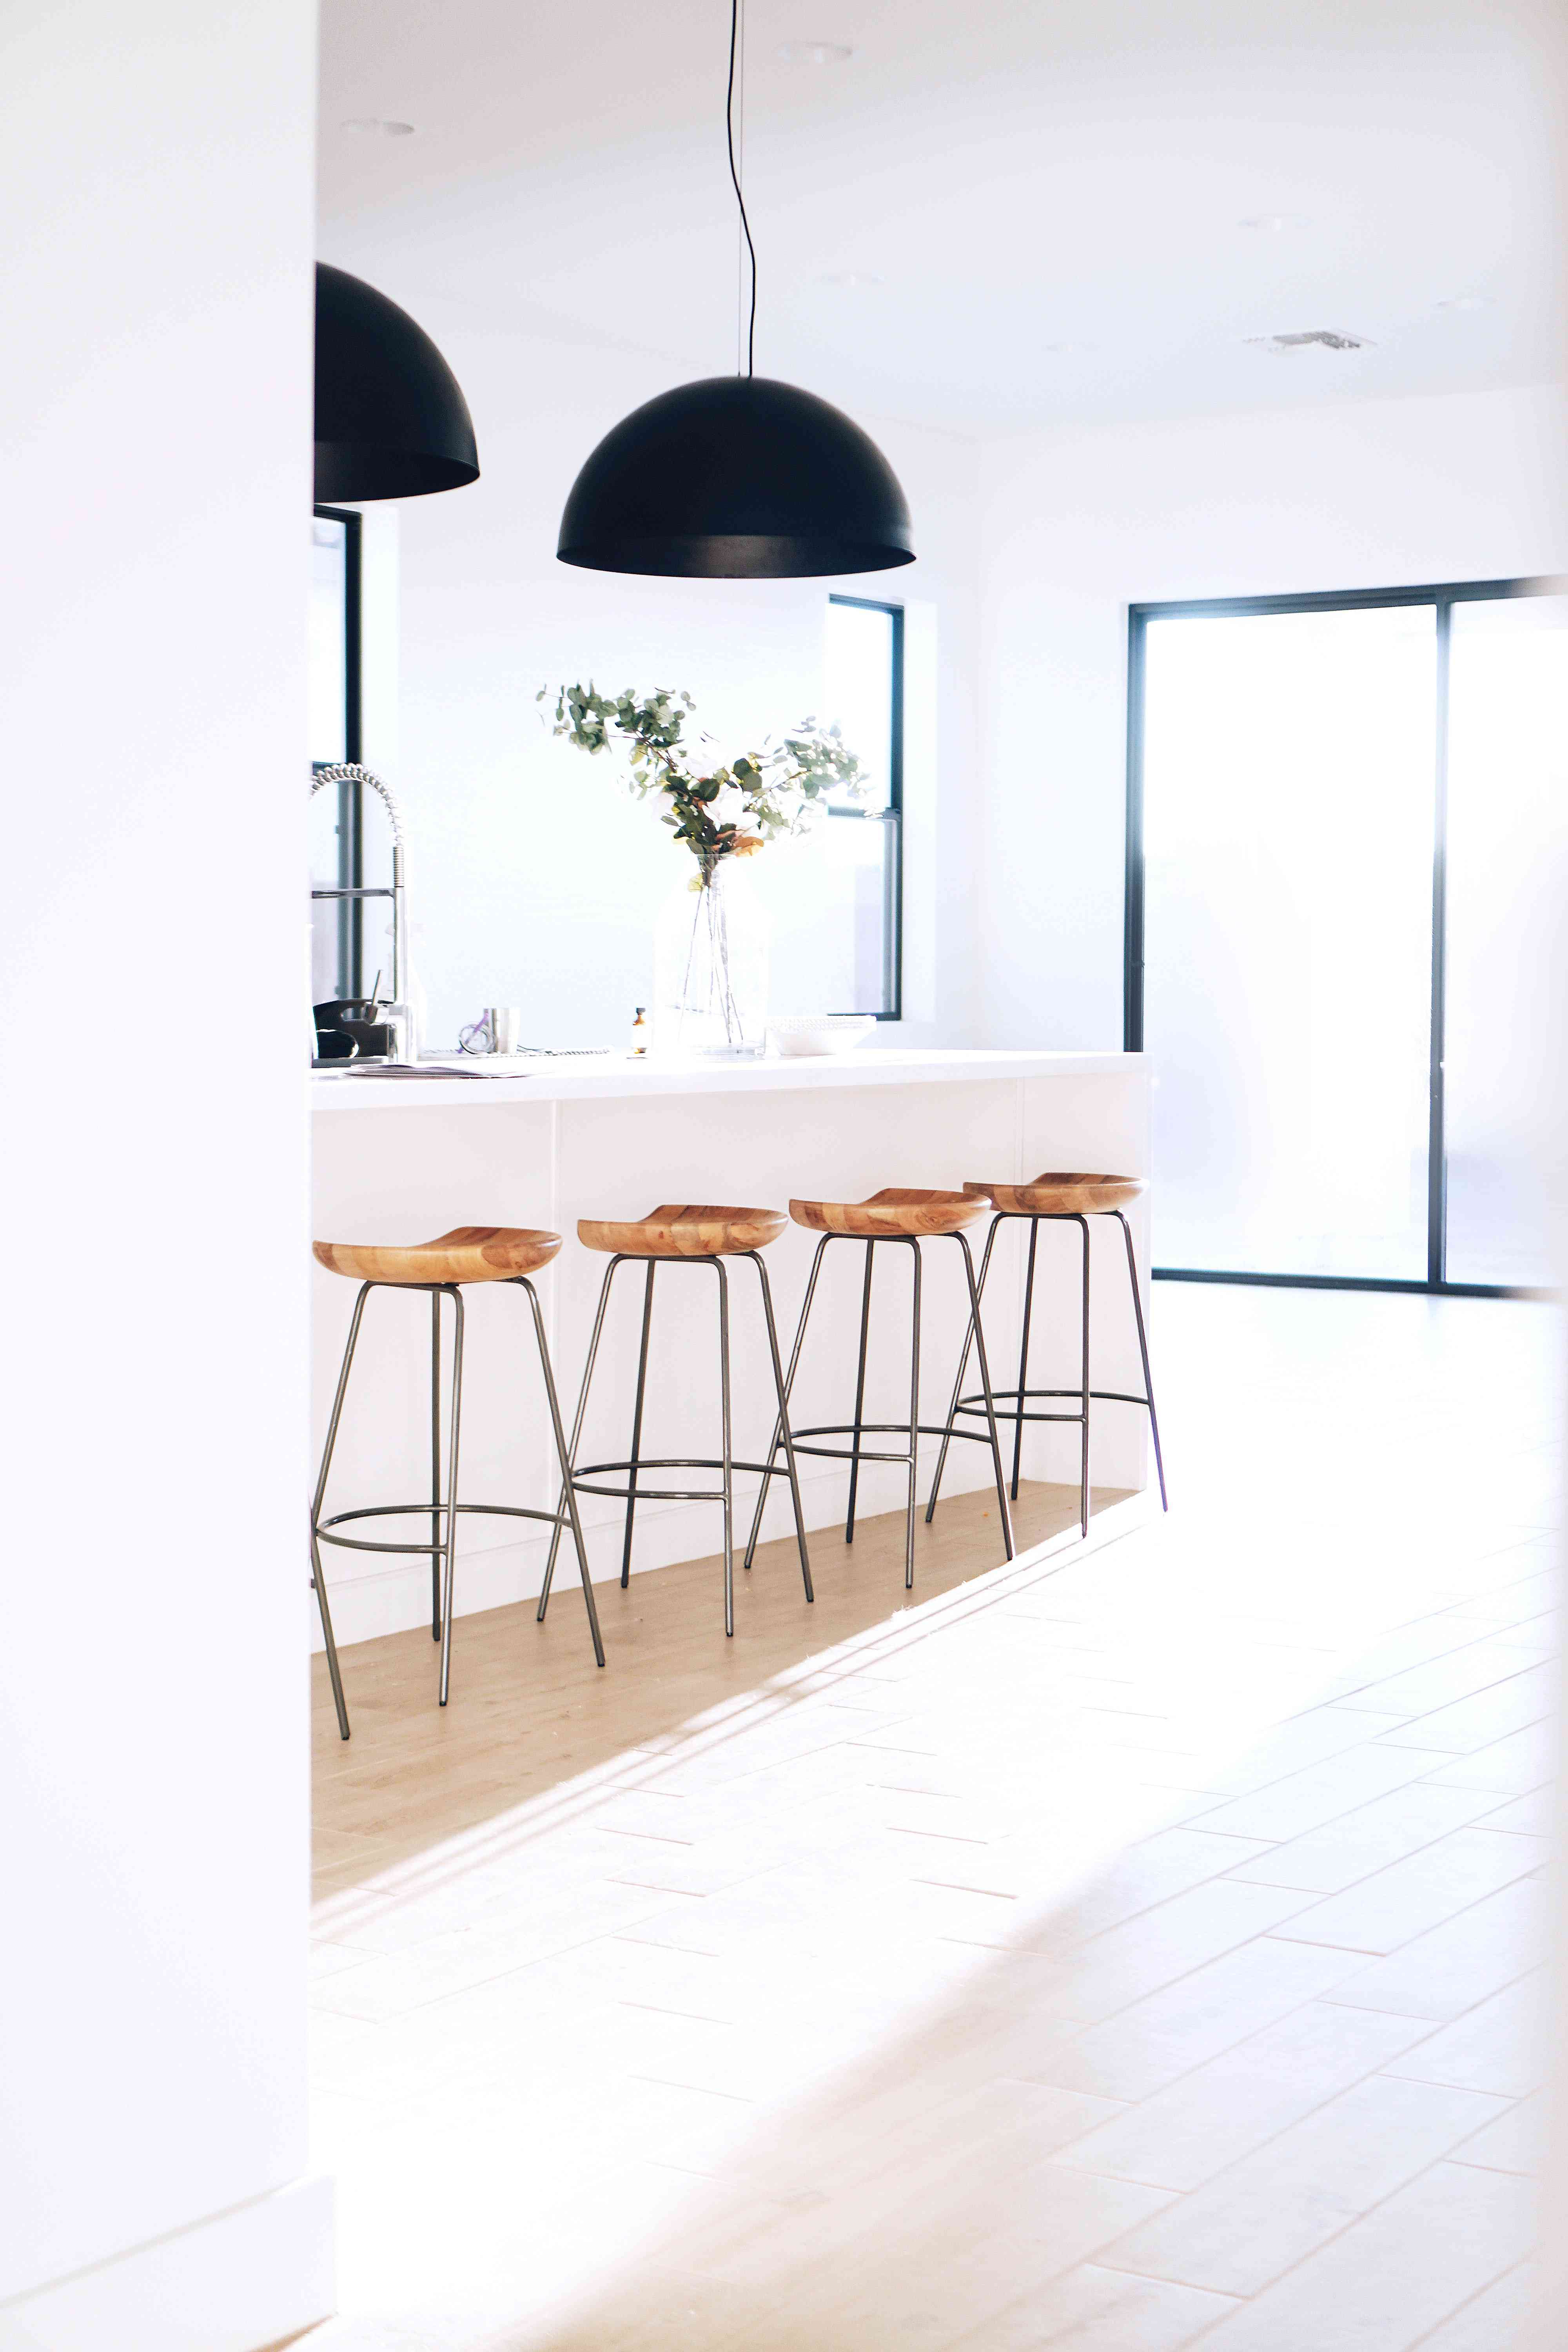 Light soaked kitchen with white walls